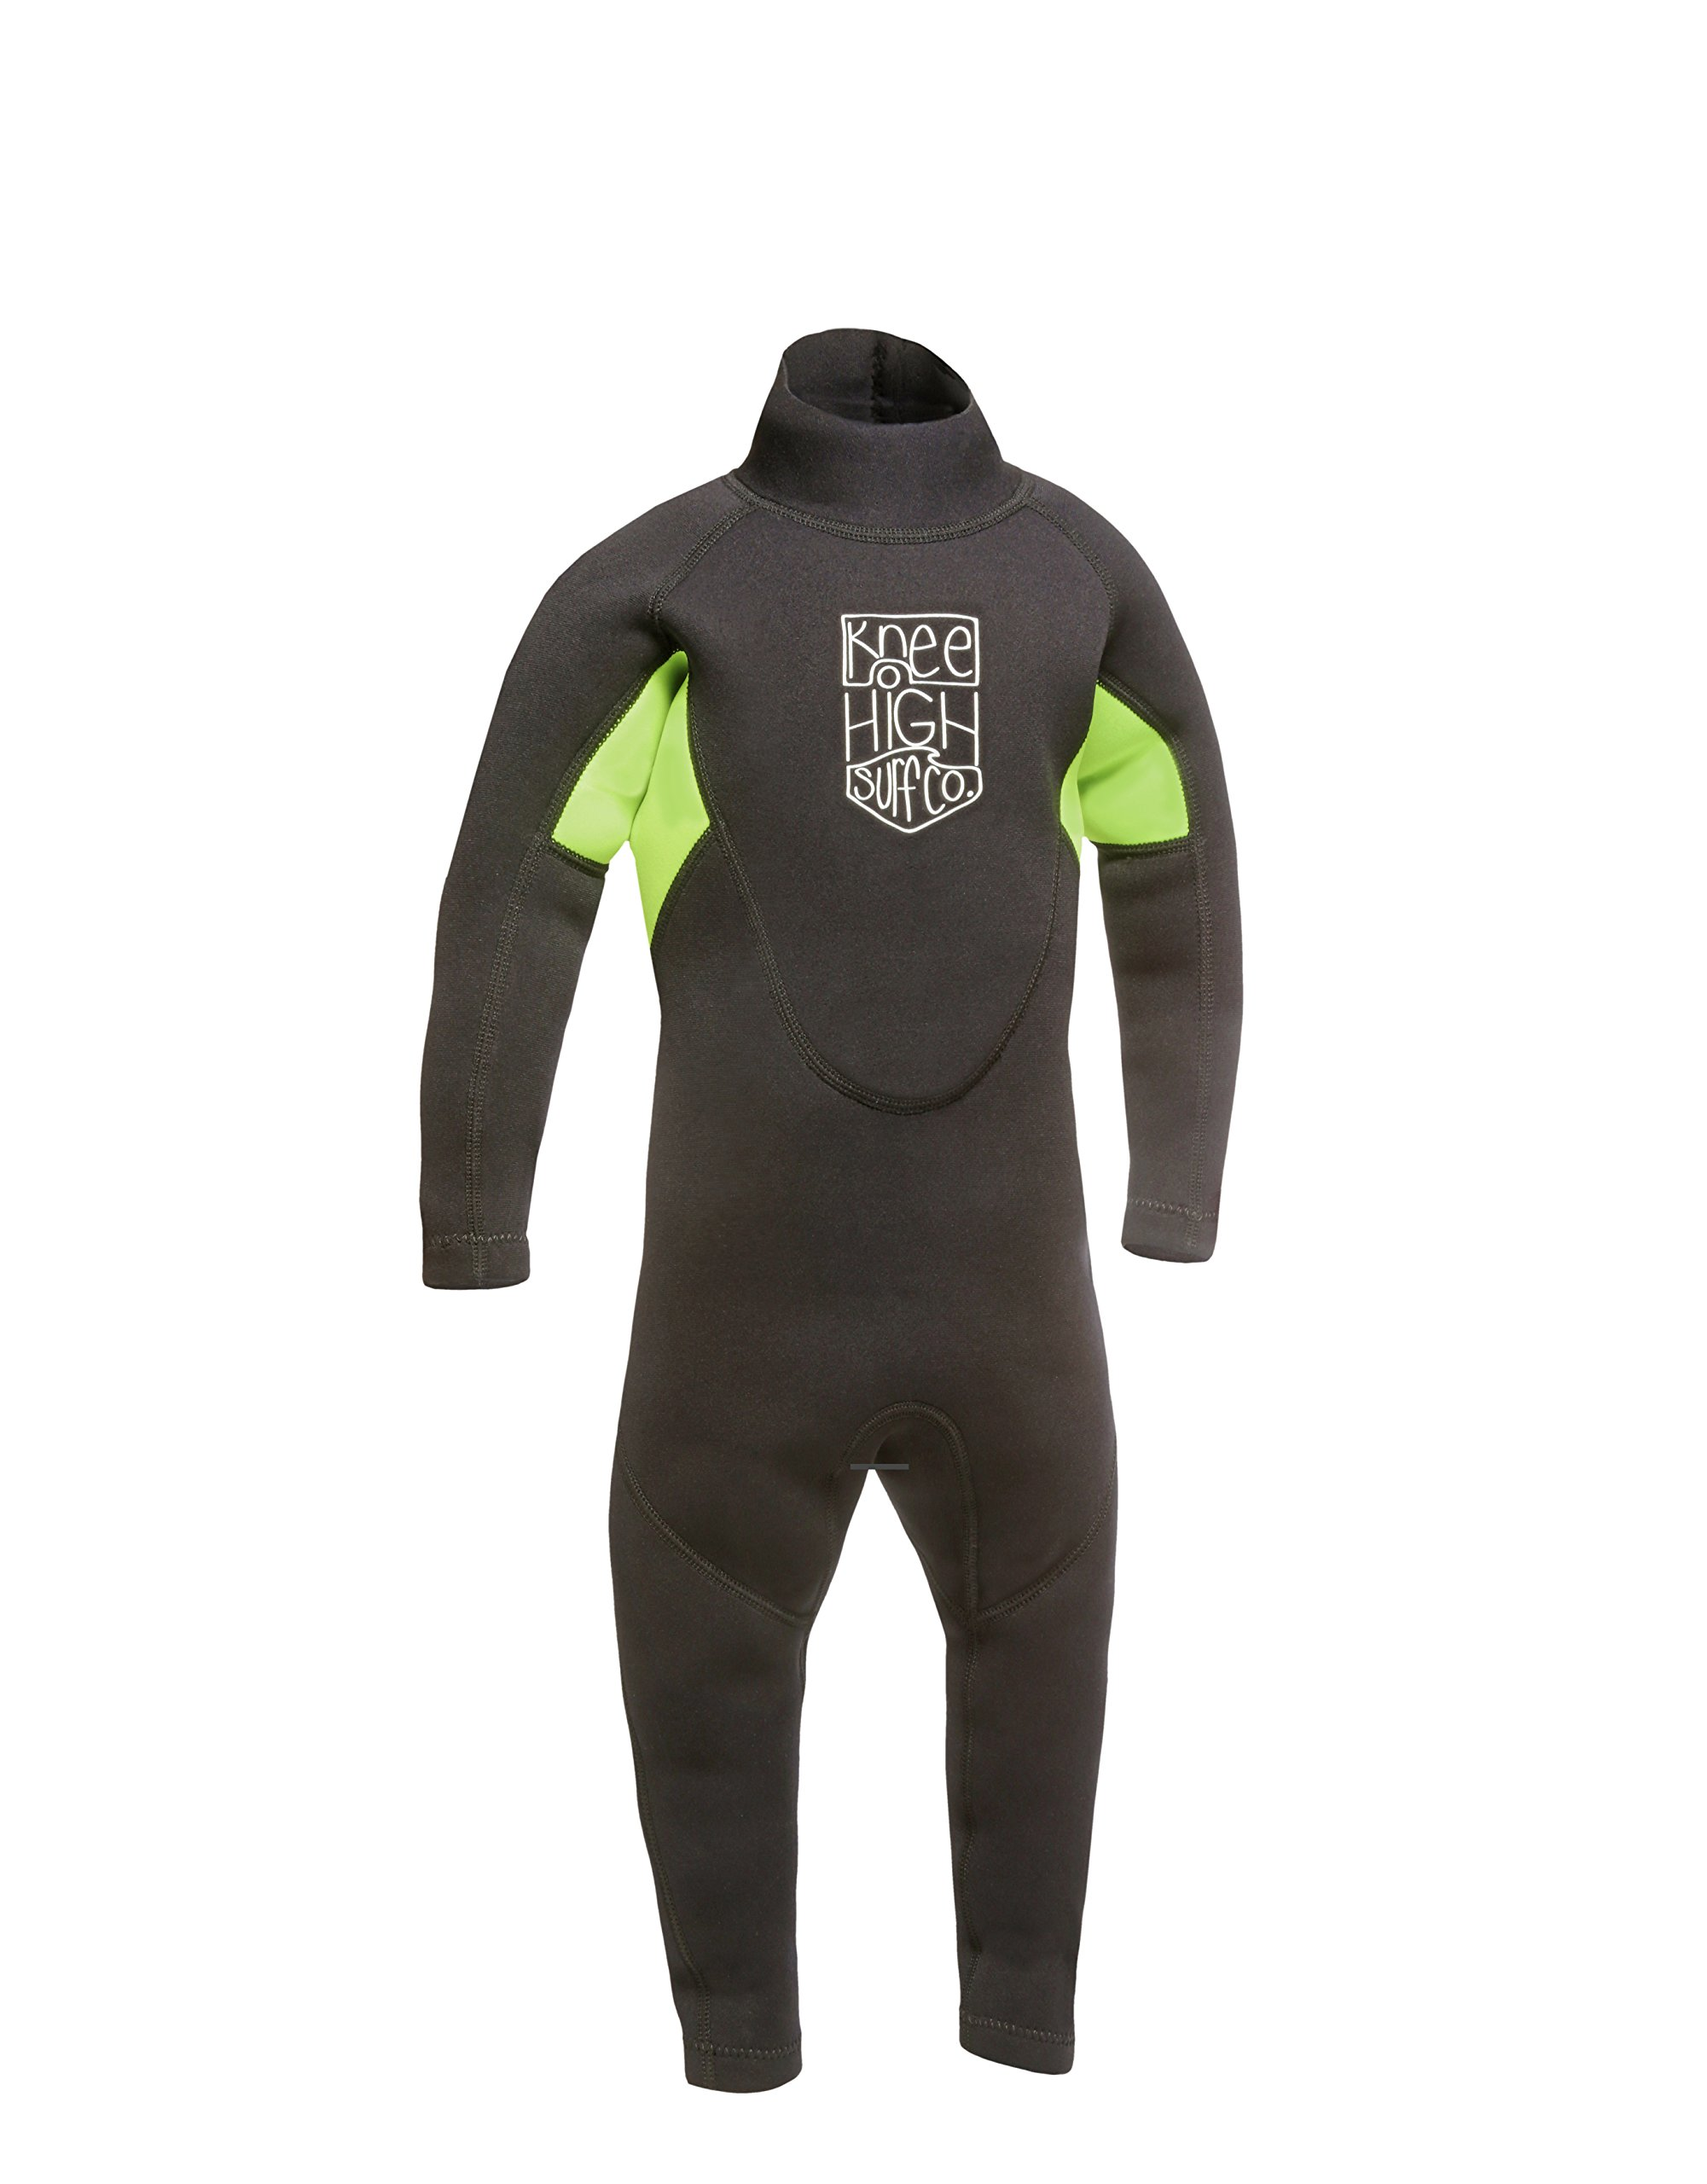 Knee High Surf Co. Kids Wetsuit Full Suit for Infant Toddler and Baby (Small)